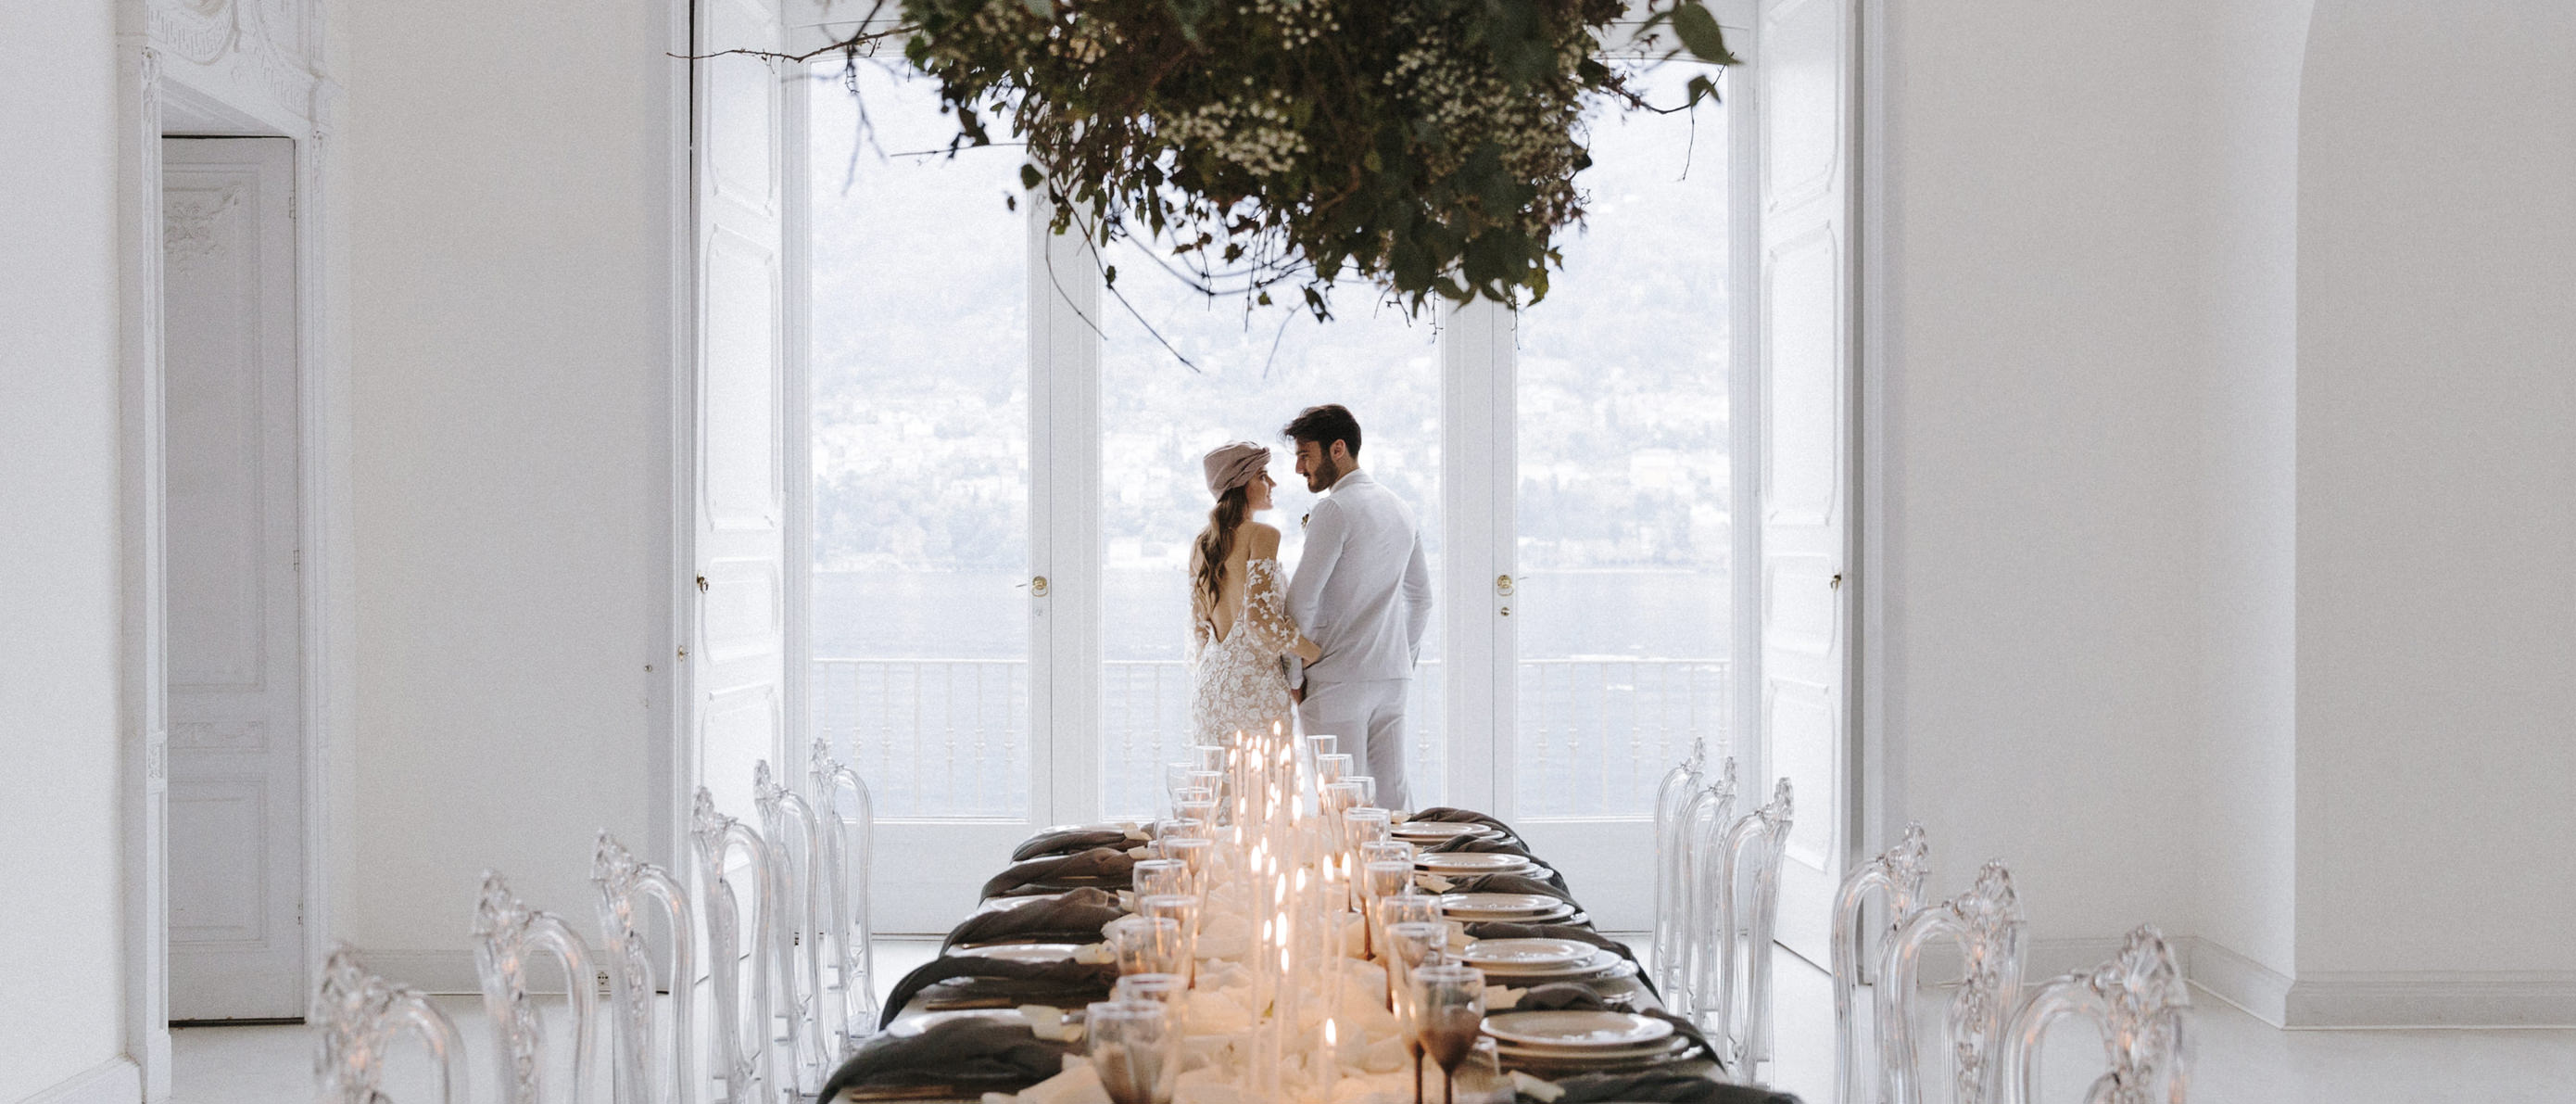 Lake Como wedding photographer specialized in refined and bespoke weddings